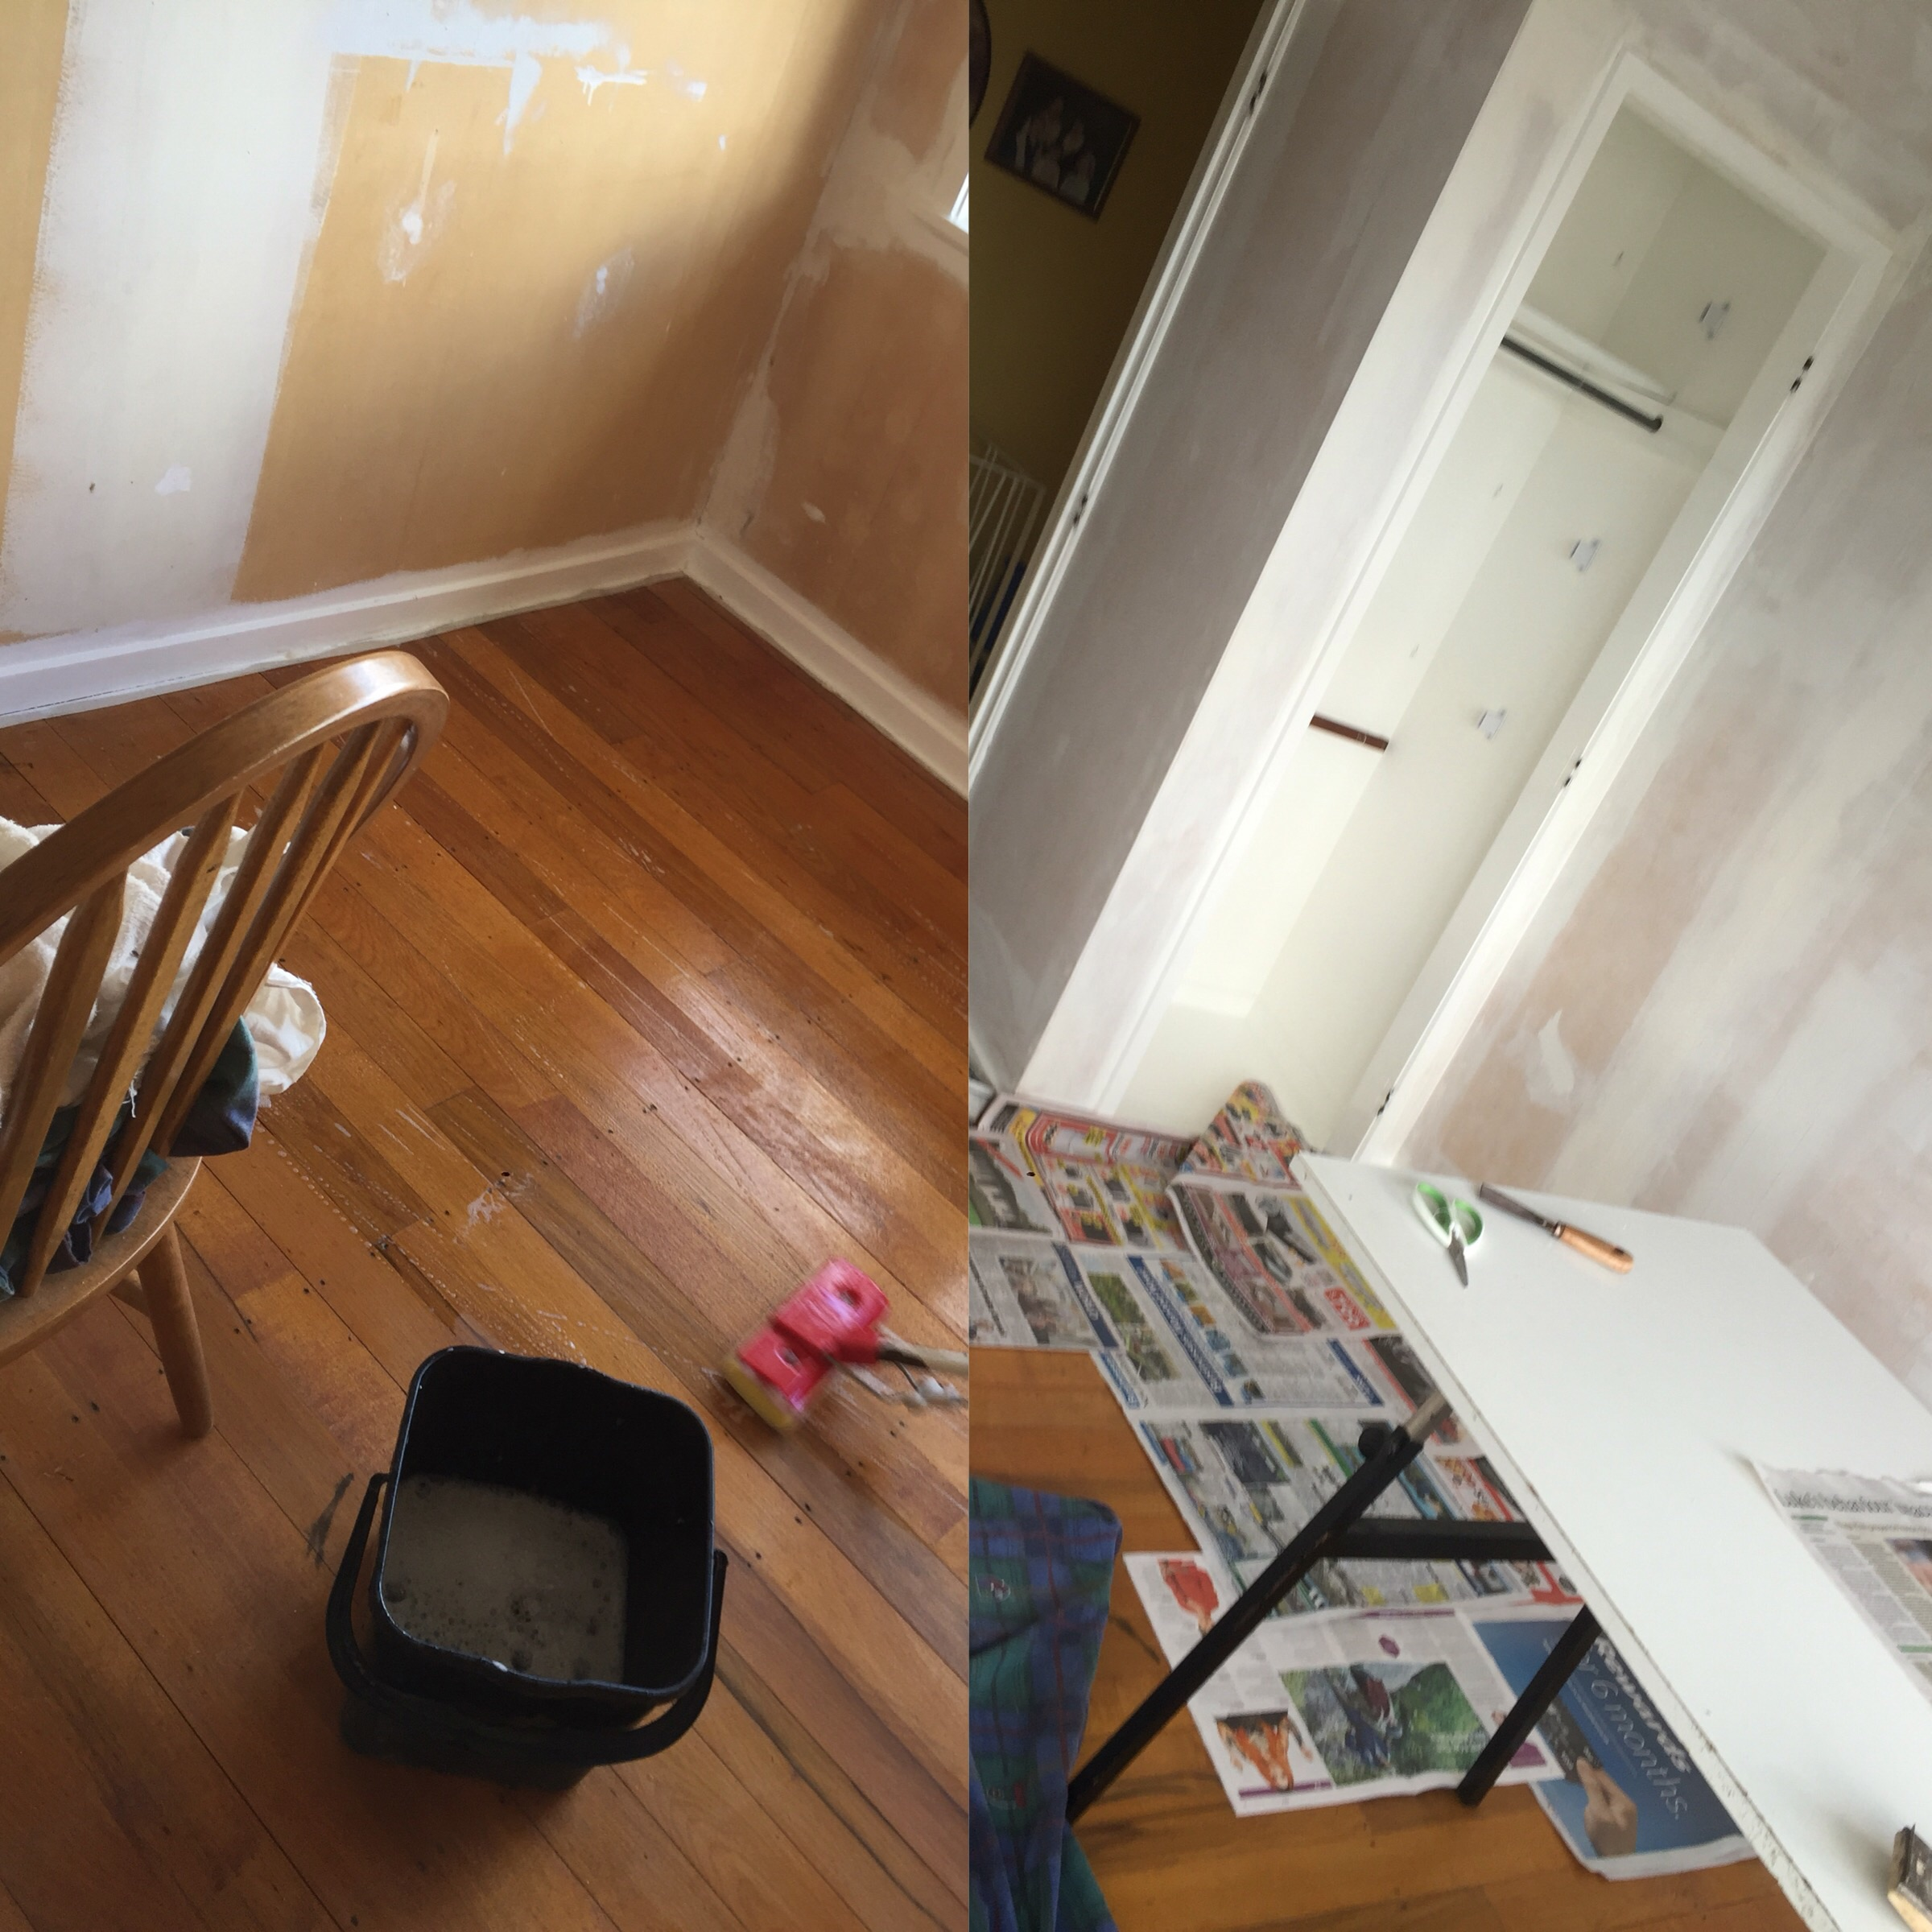 Prep work (carpet removal, floor cleaning, wall sizing/under-sealing) before wallpapering guest bedroom.